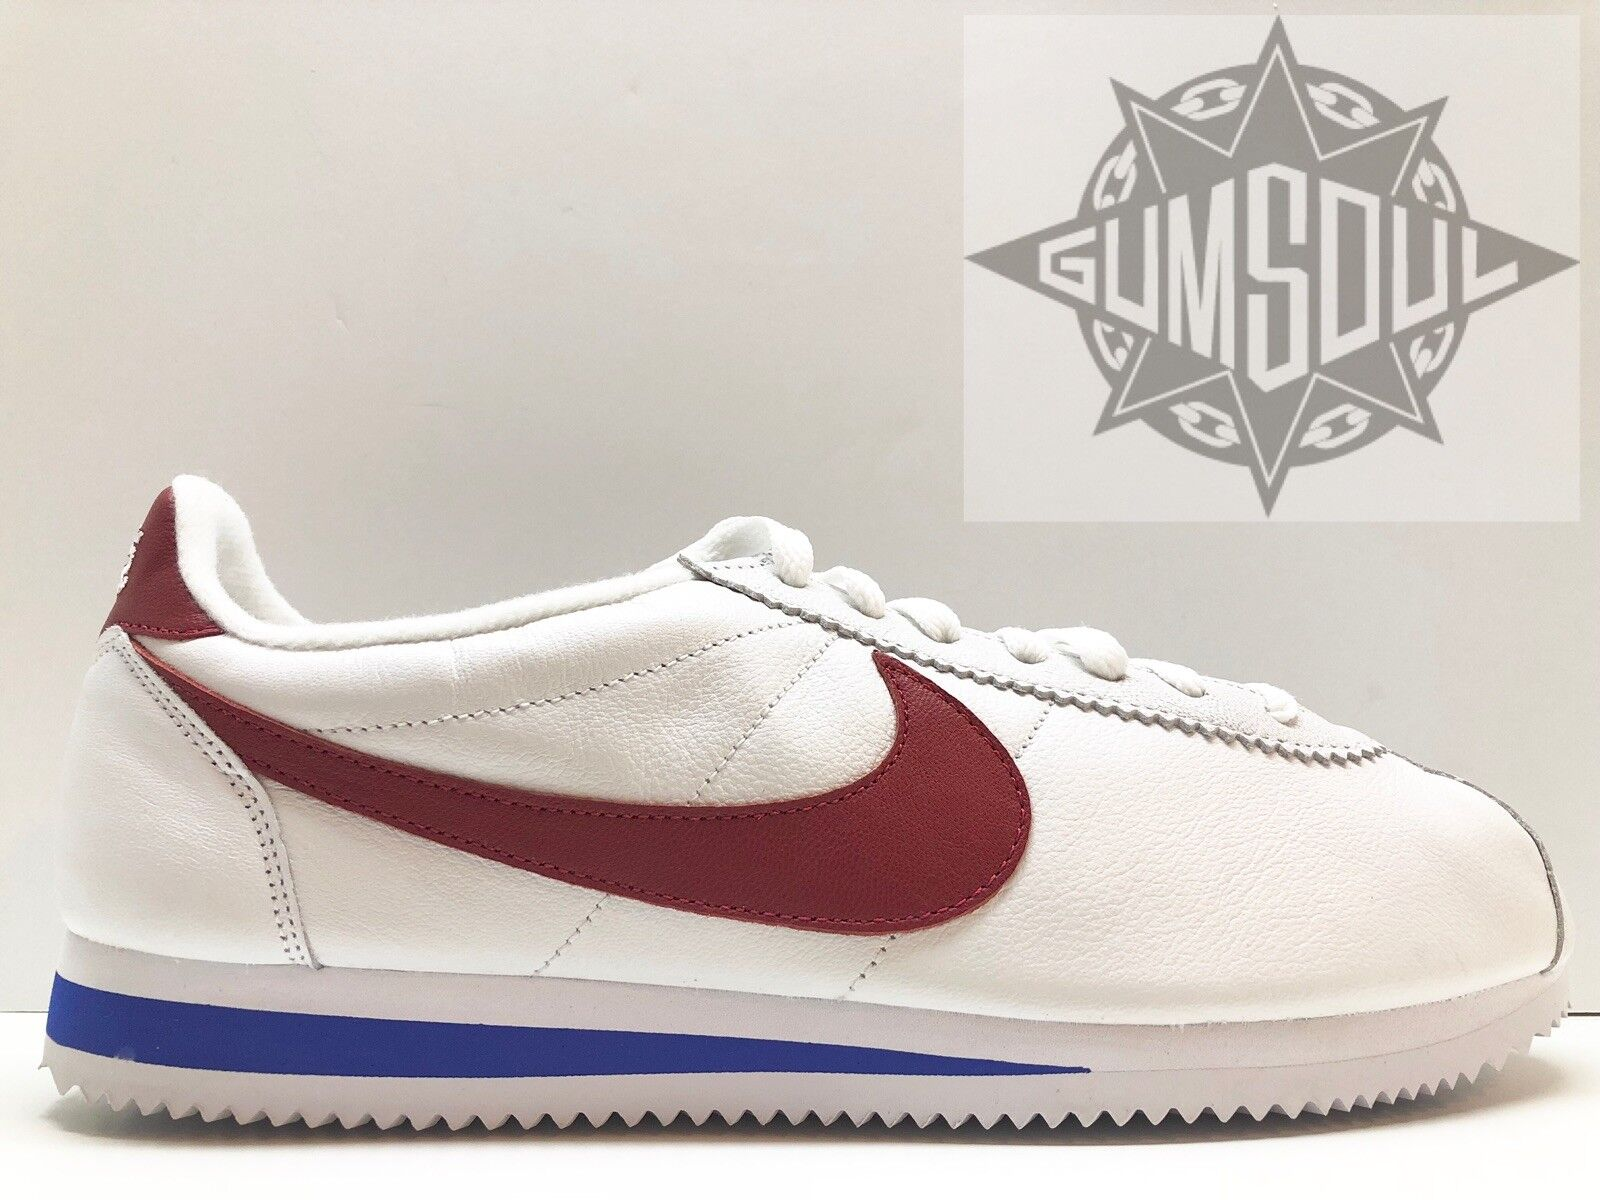 NIKE CLASSIC CORTEZ LEATHER QS NAI KE FORREST GUMP RED WHITE 885724 164 Price reduction Seasonal clearance sale